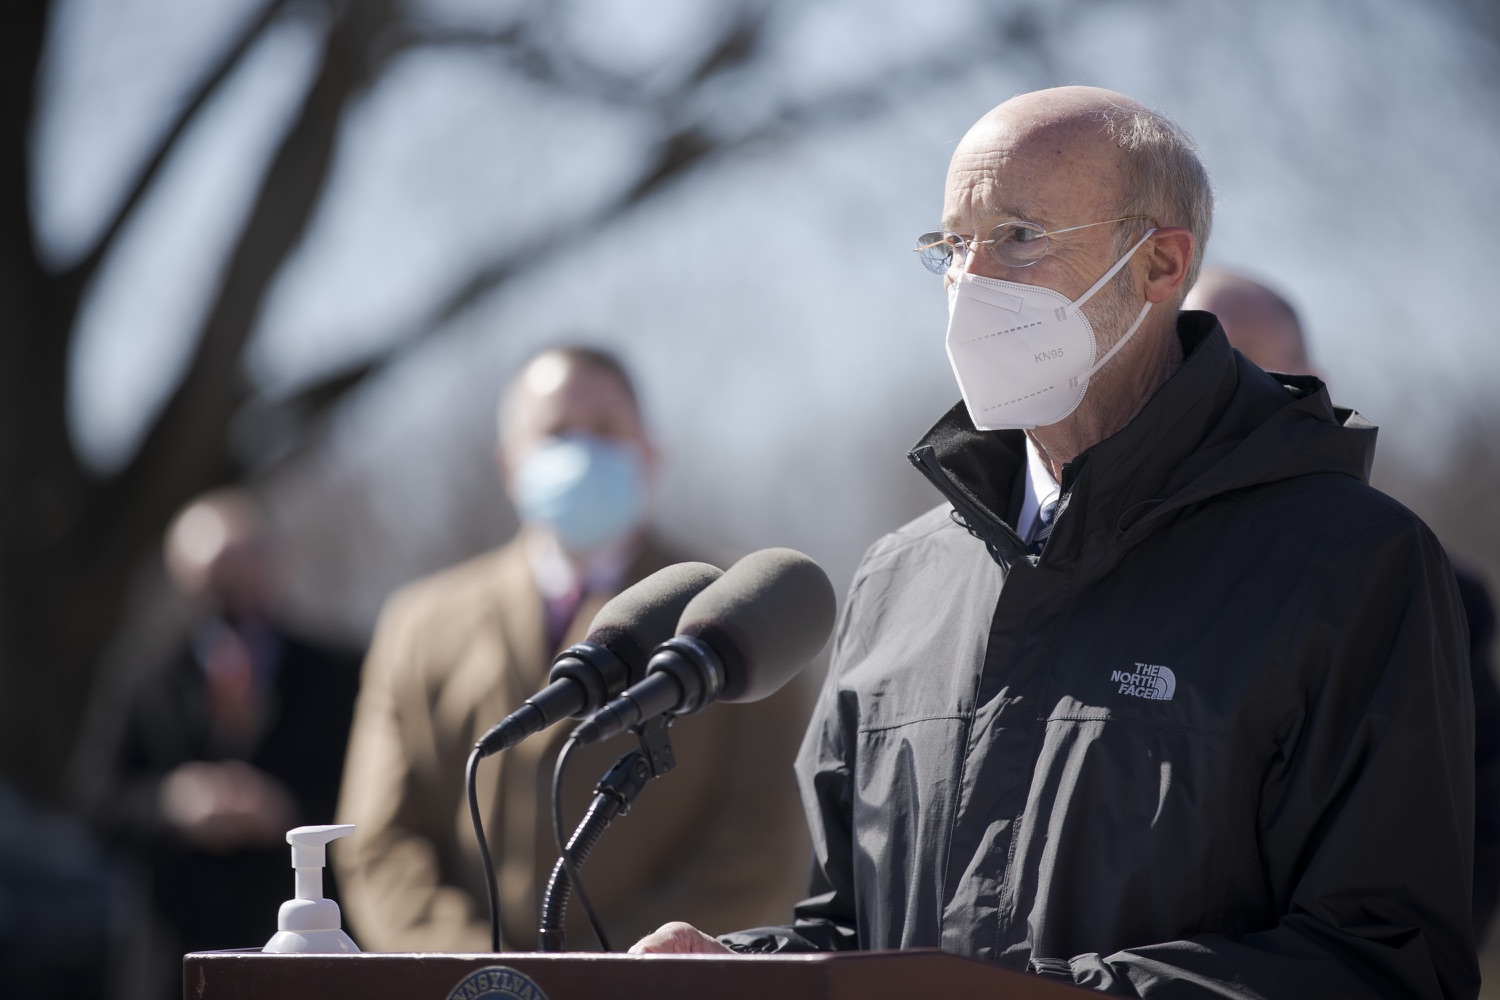 "<a href=""https://filesource.wostreaming.net/commonwealthofpa/photo/18560_gov_chirp_dz_06.jpg"" target=""_blank"">⇣ Download Photo<br></a>Pennsylvania Governor Tom Wolf answers questions from the press.  Governor Tom Wolf announced today that the hospitality industry will soon be able to apply for immediate relief through the COVID-19 Hospitality Industry Recovery Program (CHIRP), a new grant program established by the Wolf Administration to support local businesses in the hospitality industry that were affected by the COVID-19 pandemic. Harrisburg, PA  March 2, 2021. .."